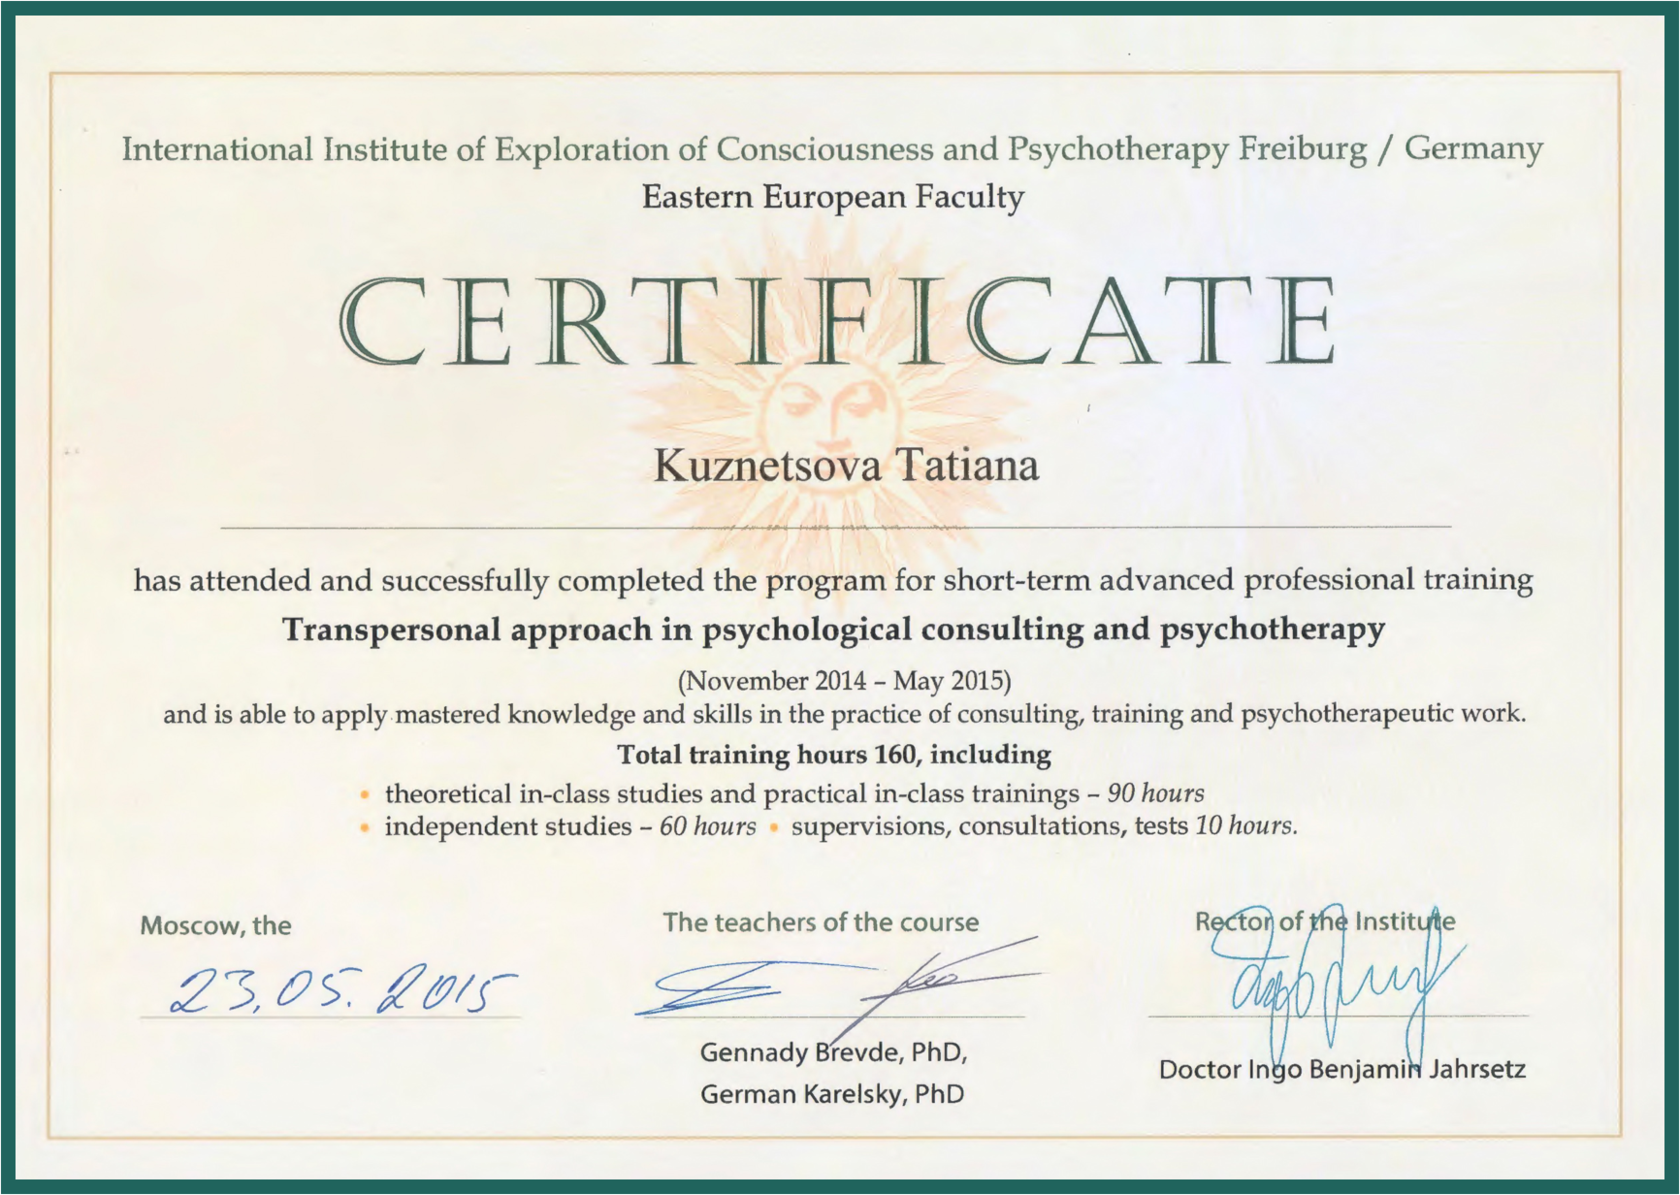 Transpersonal approach in psychological consulting and psychotherapy